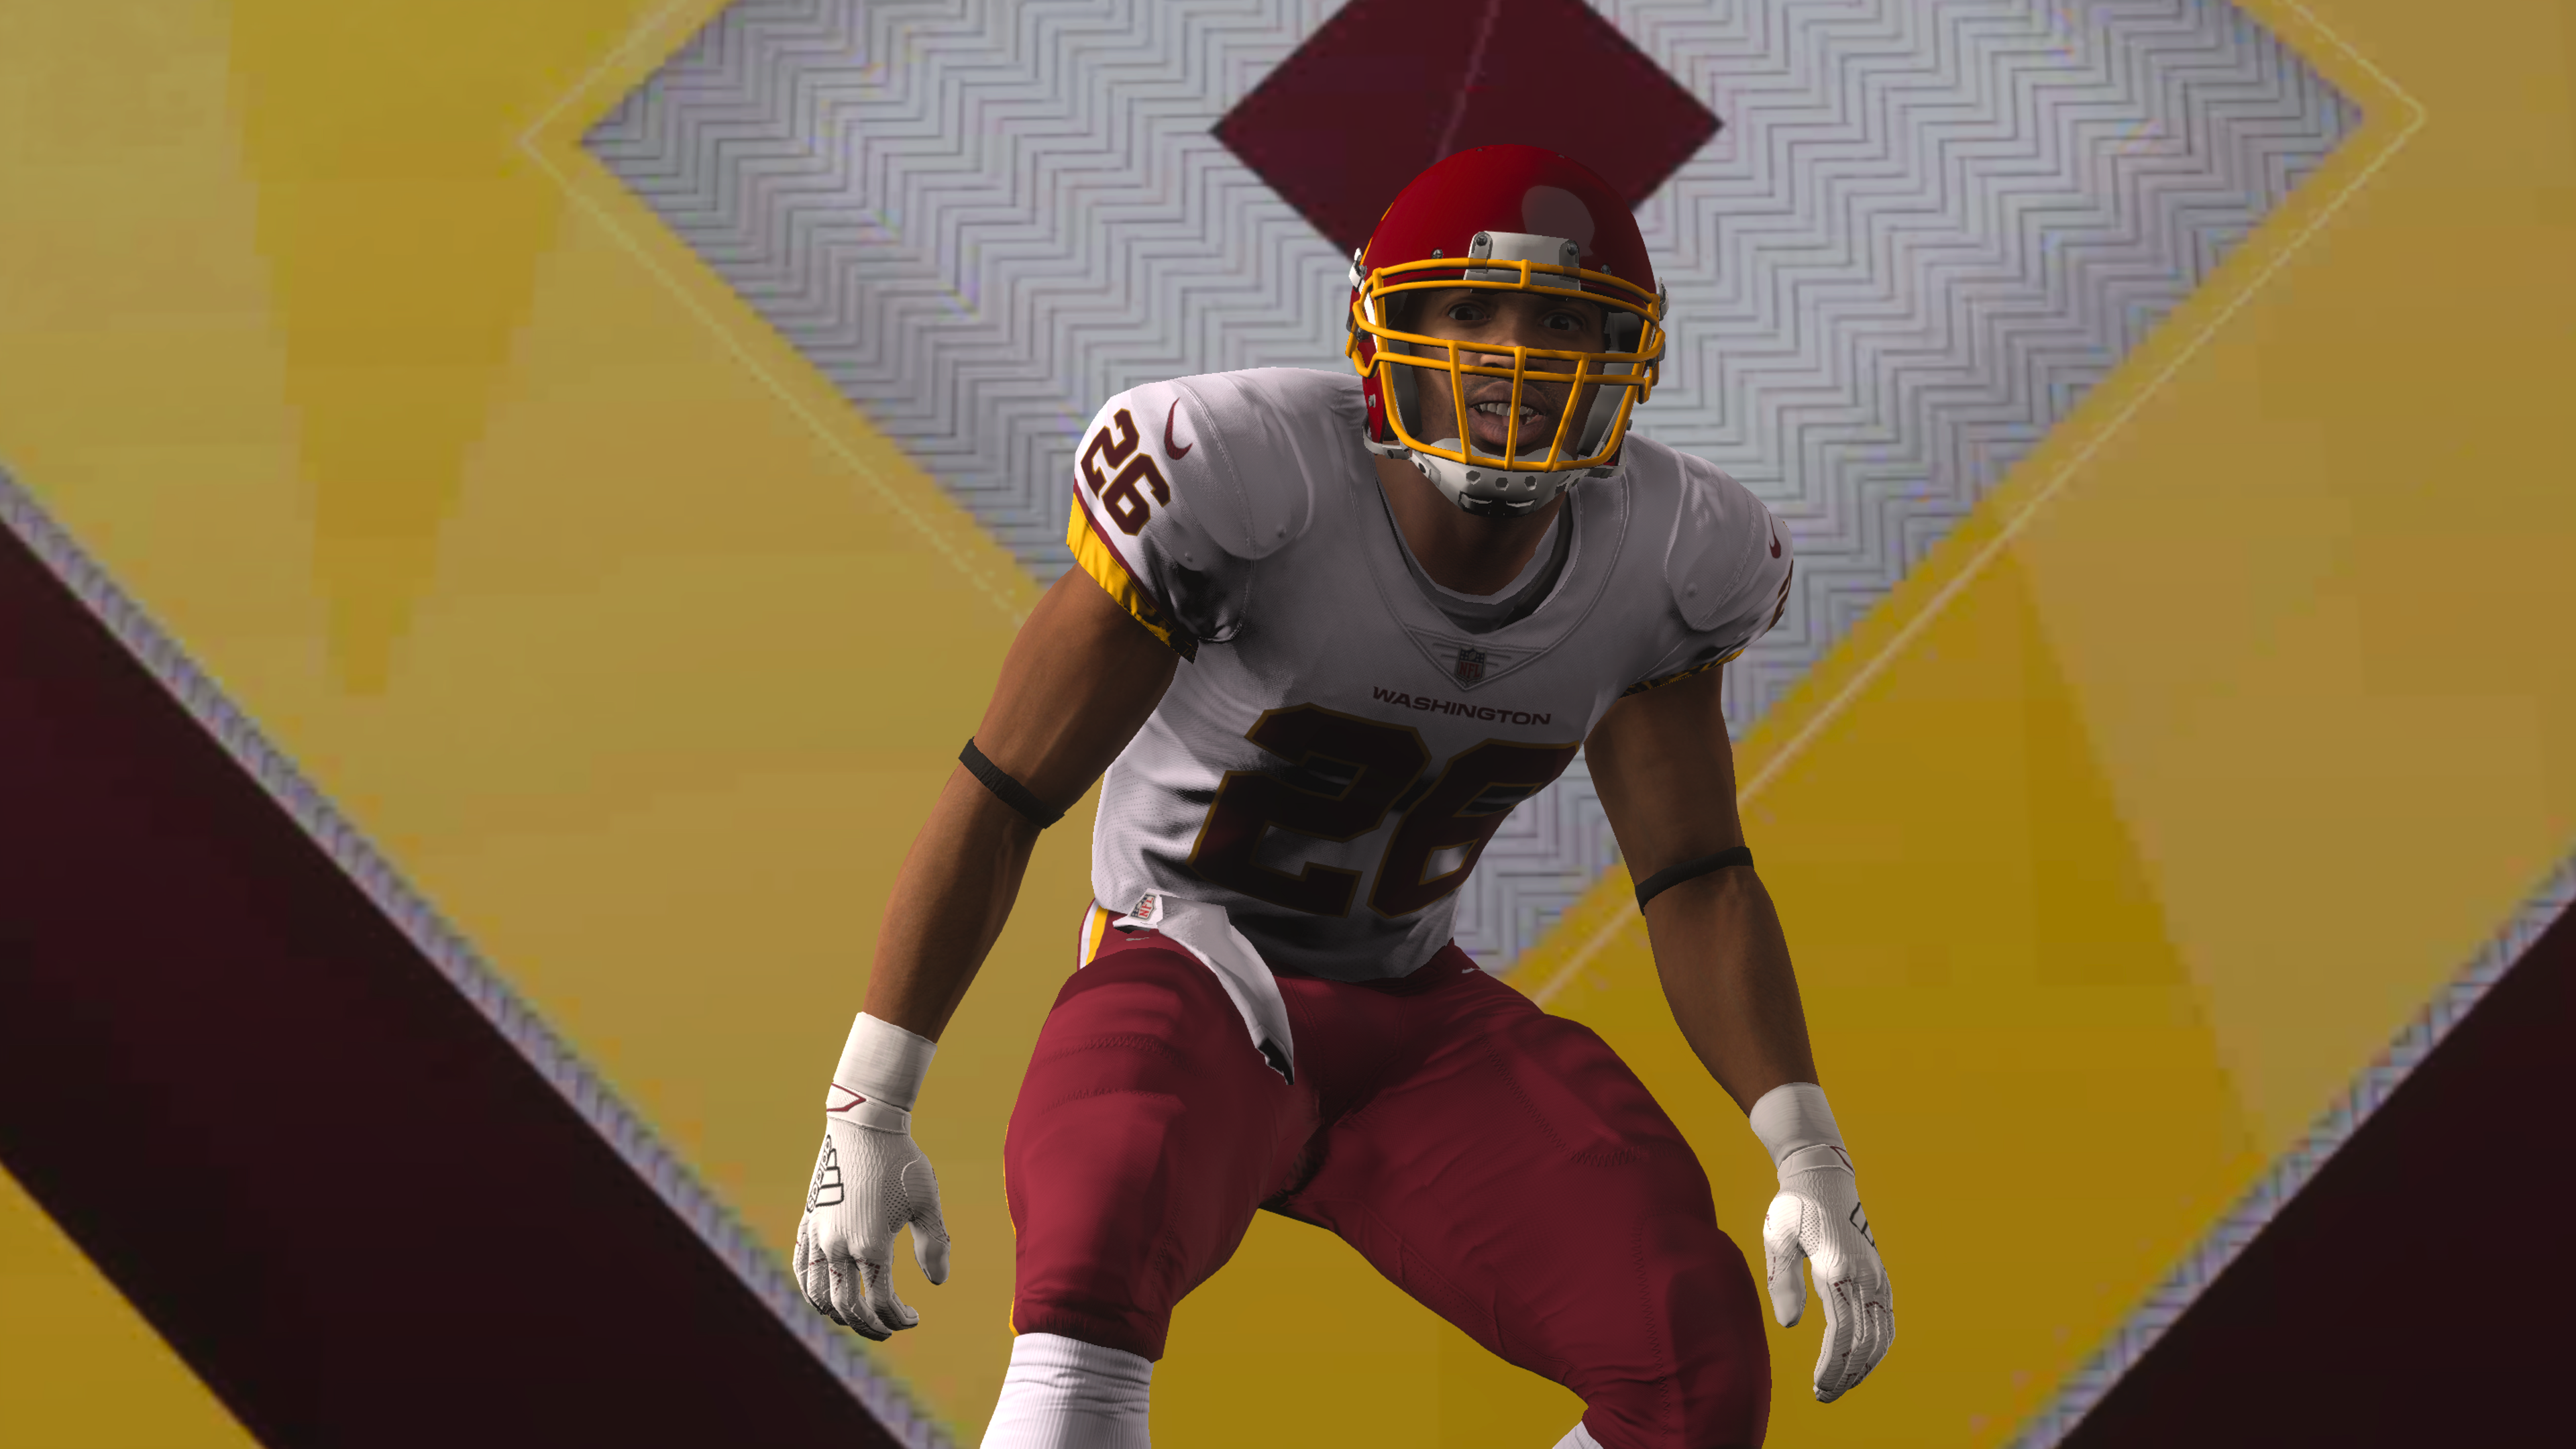 A Washington Football Team player in Madden 21